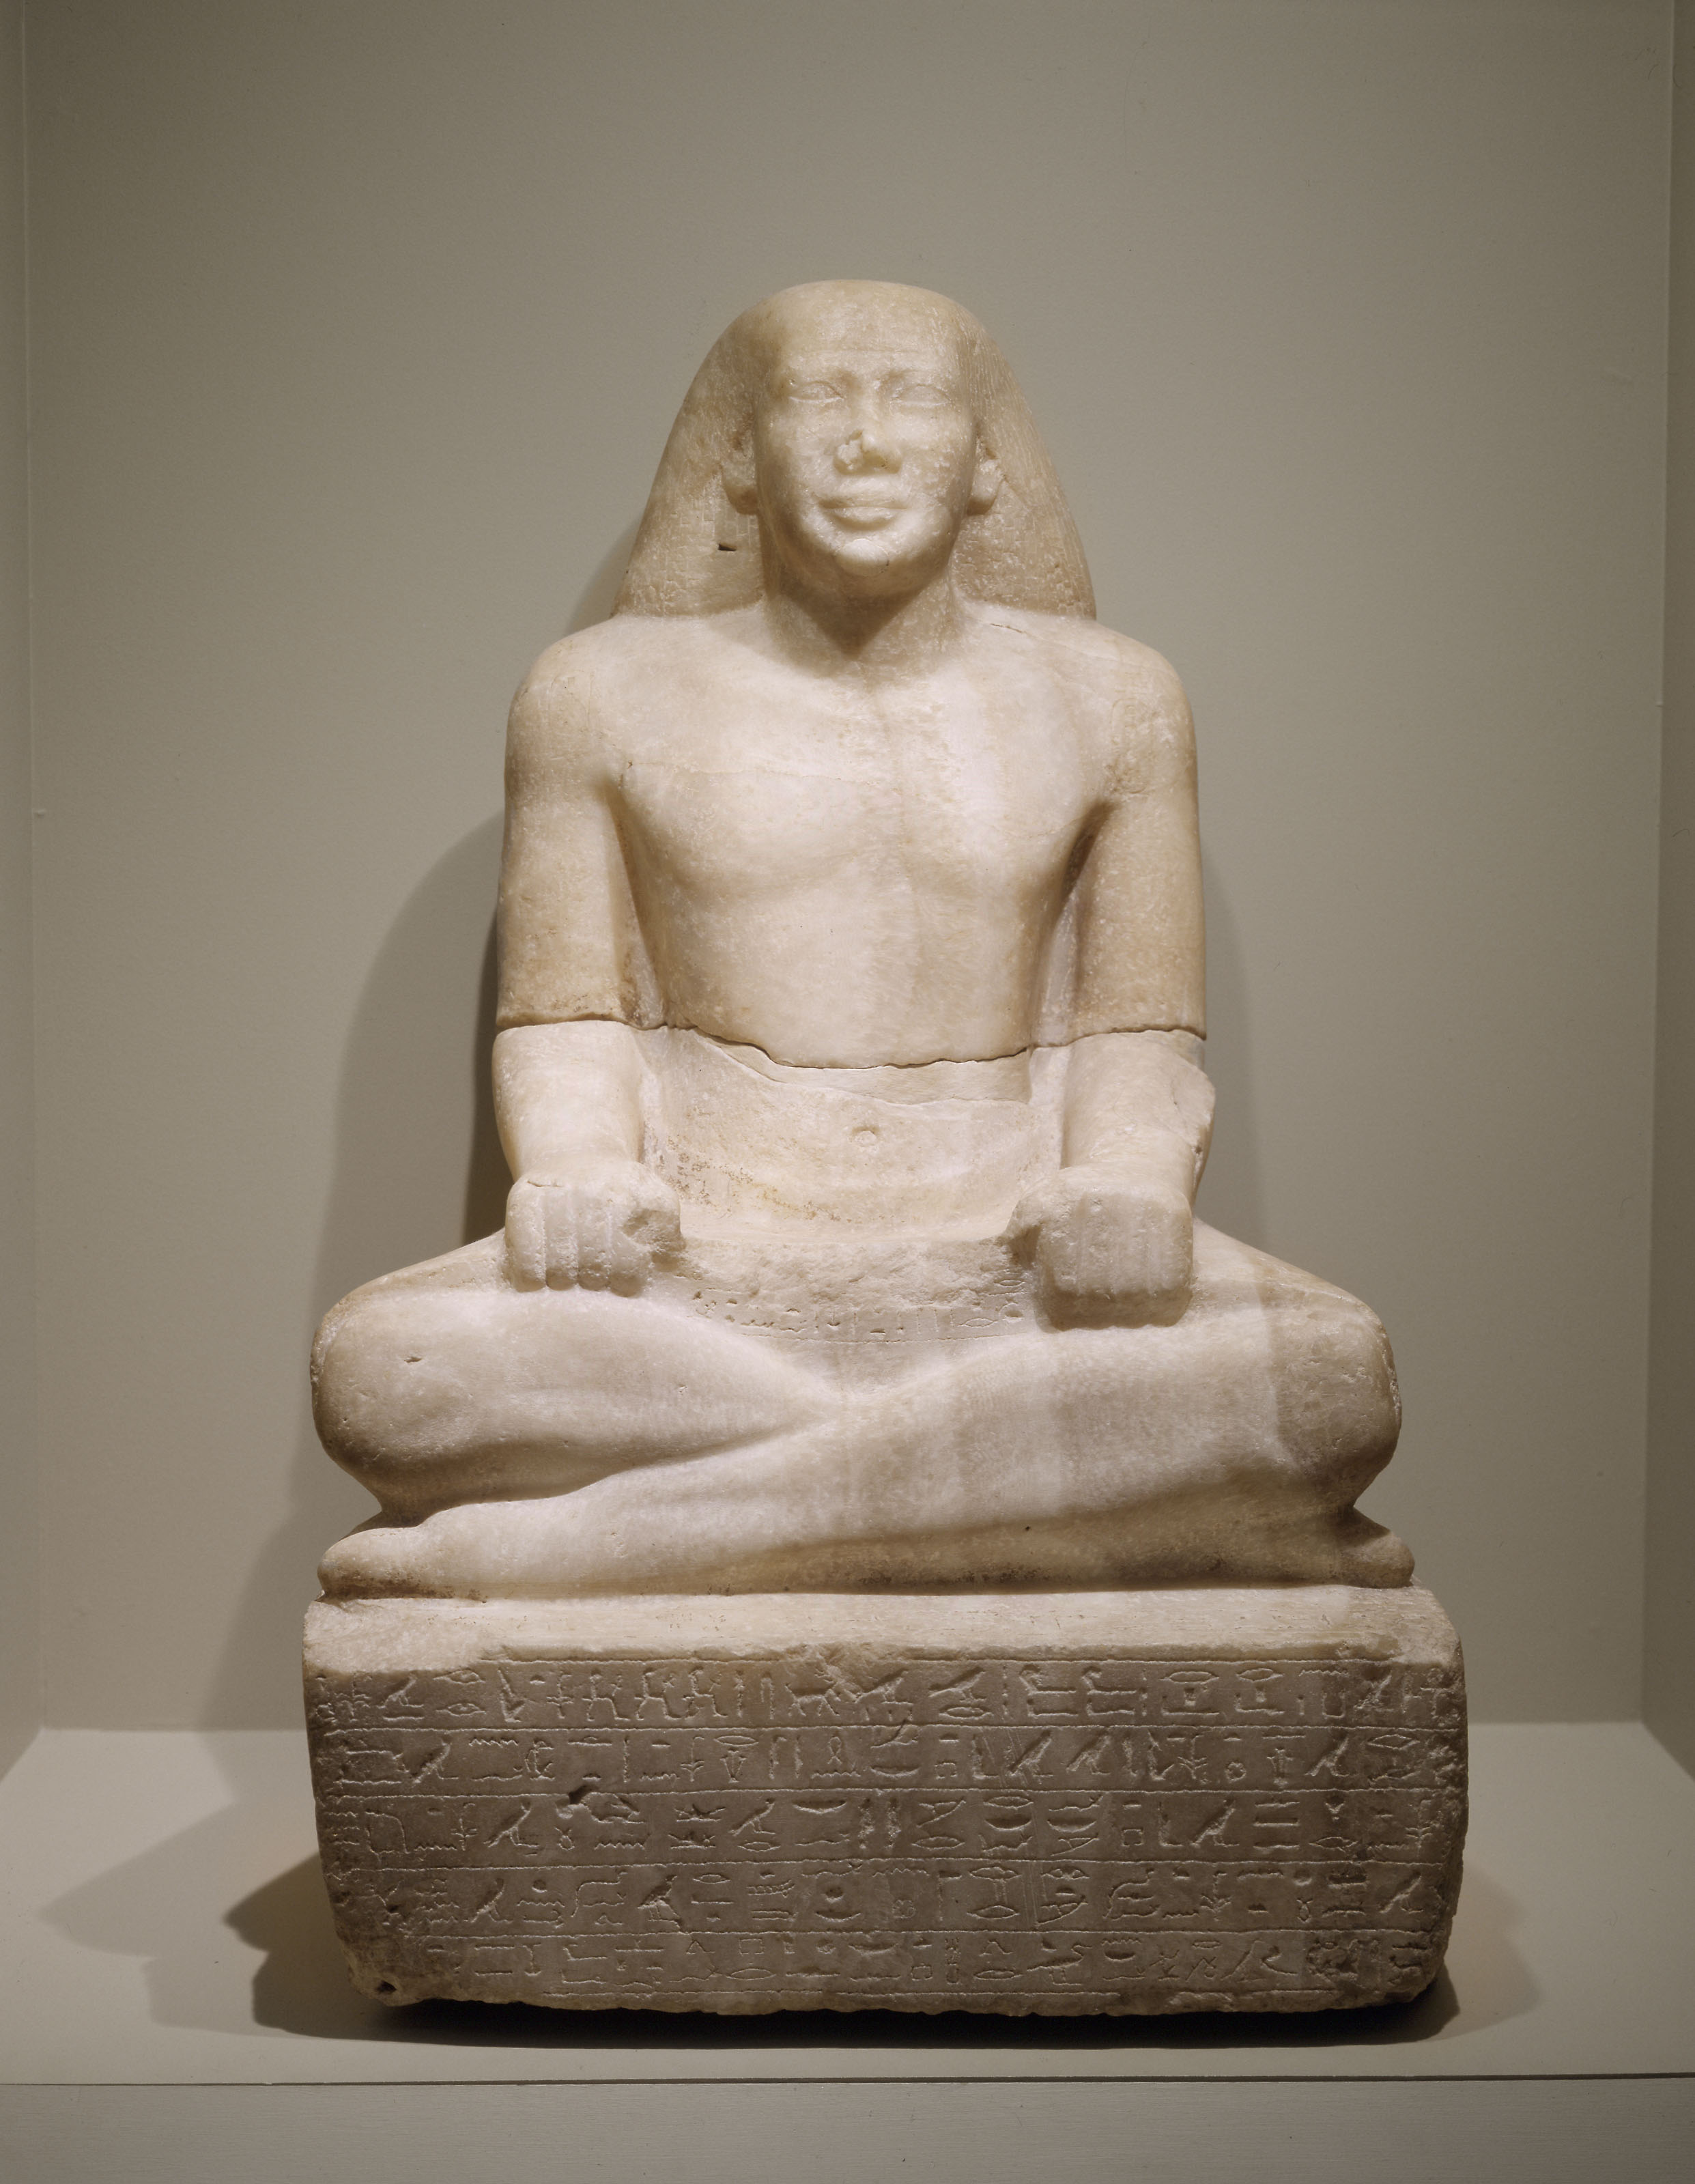 Ancient egyptian culture virginia museum of fine arts seated scribe 664610 bc alabaster adolph d and wilkins c williams fund biocorpaavc